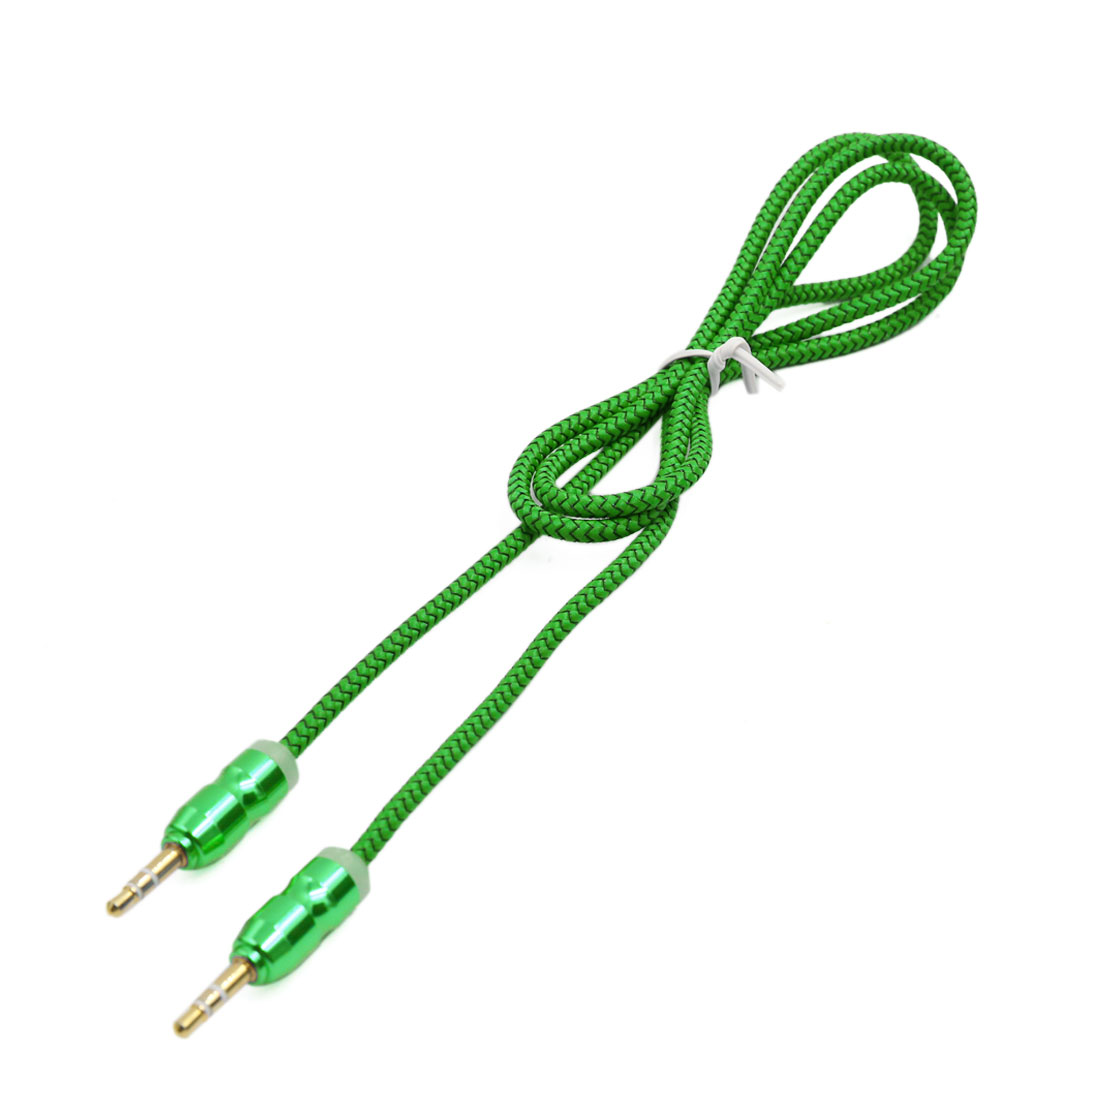 Green 3.5mm Adapter Male to Male Car Stereo Audio Headphone Aux Cable 103cm